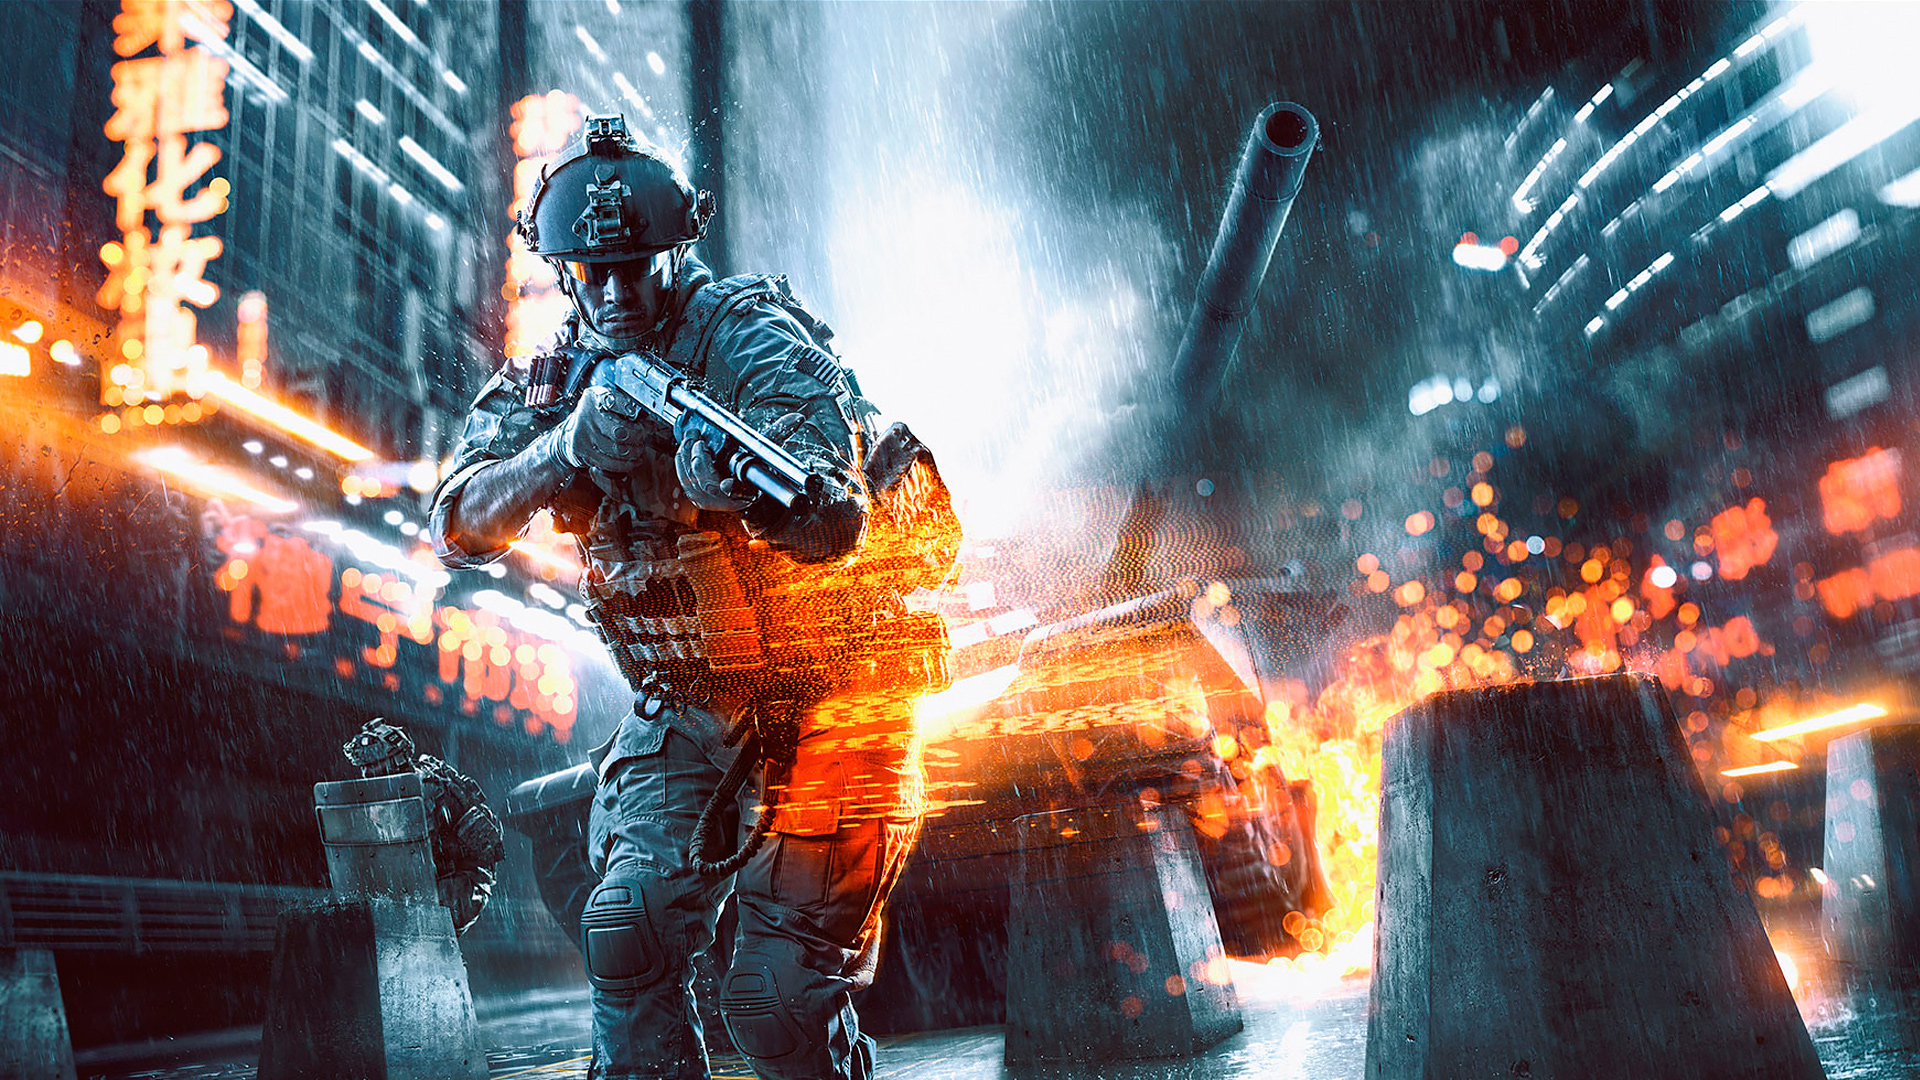 Battlefield 4 Dragon's Teeth